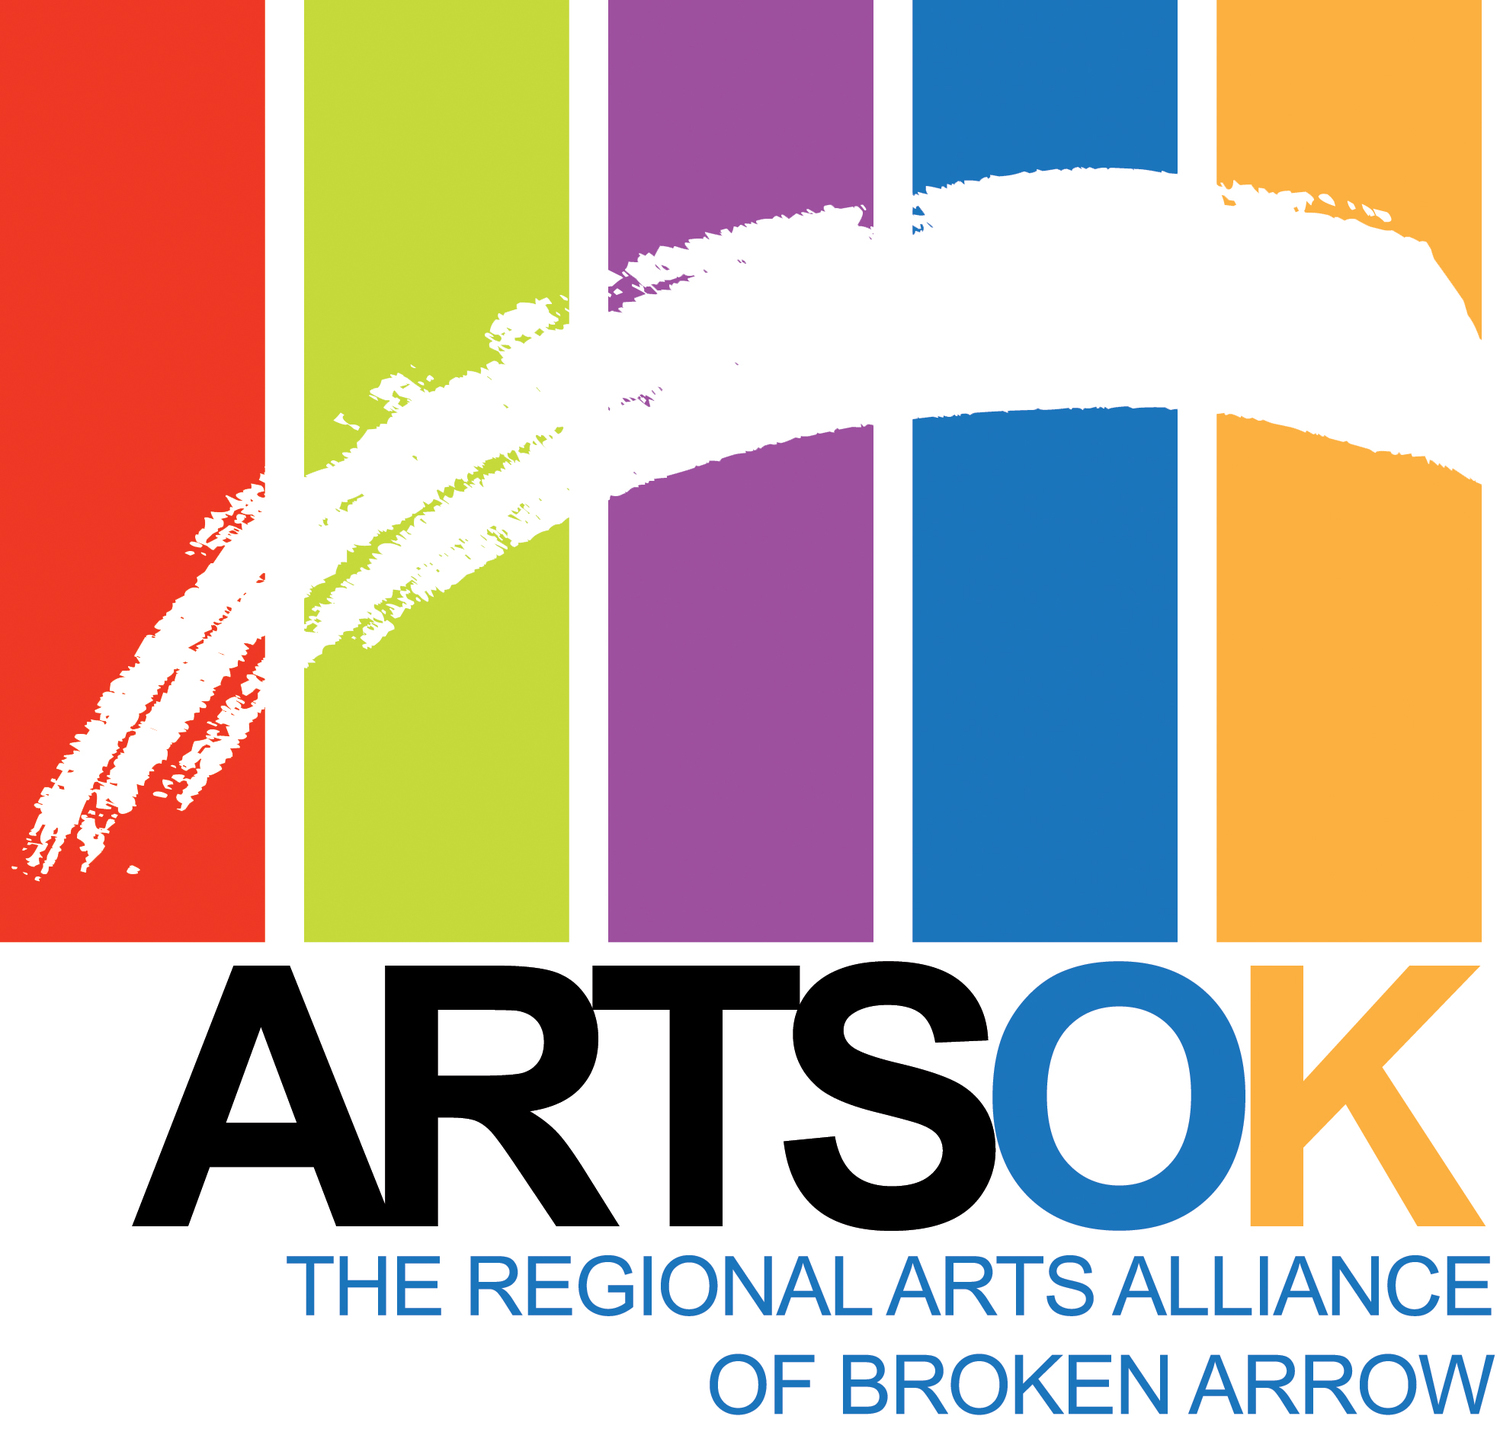 The Regional Arts Alliance of Broken Arrow